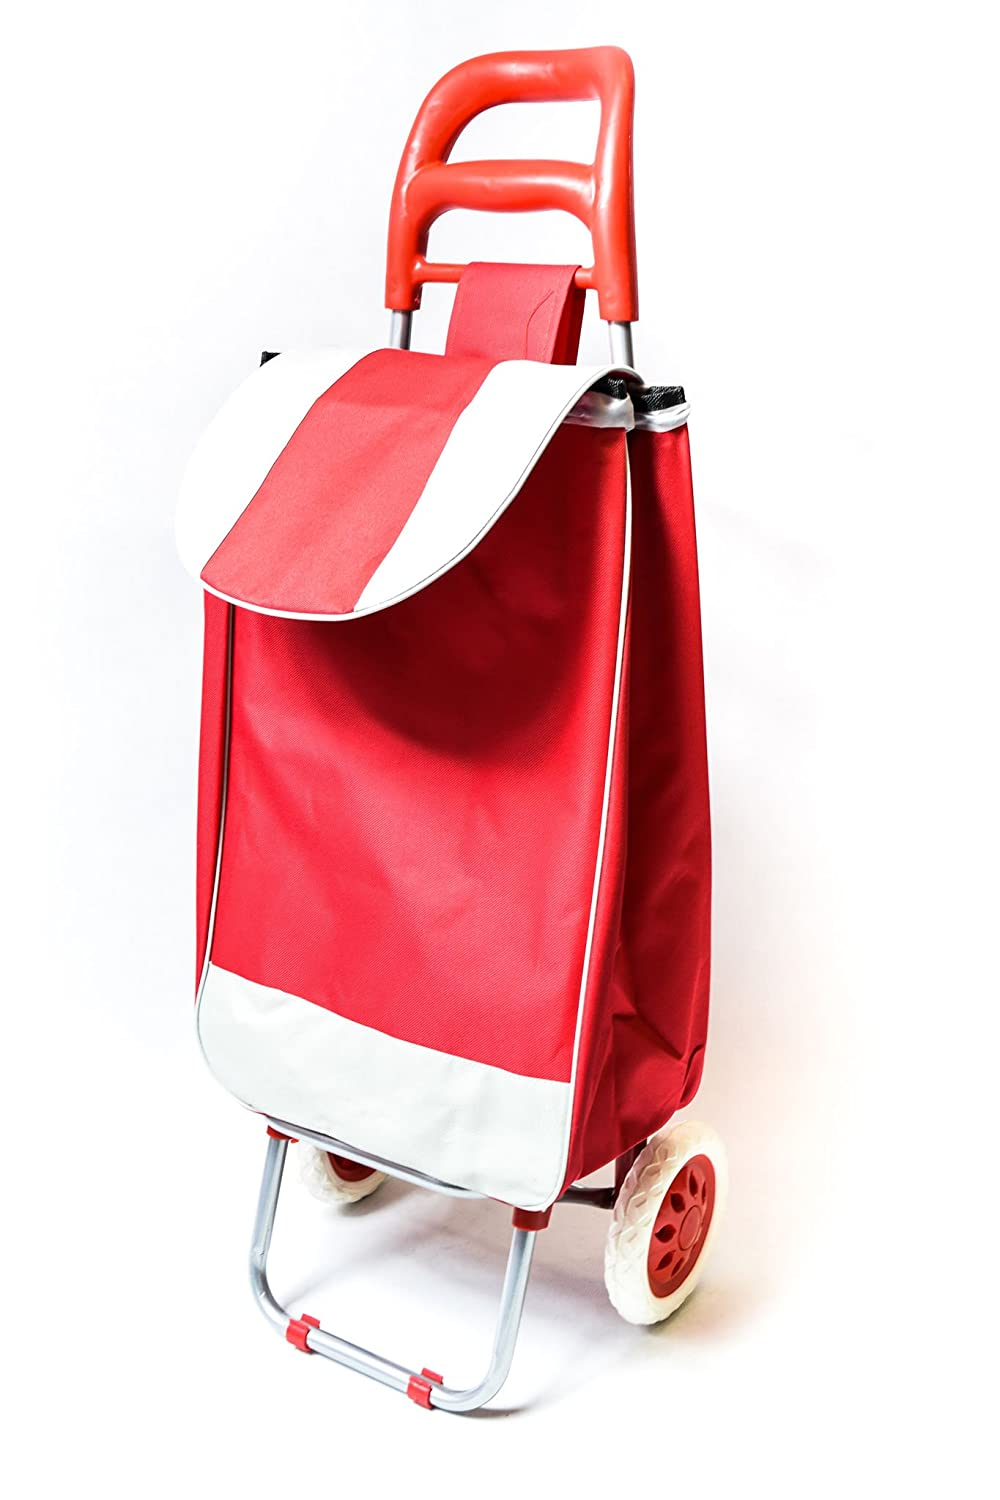 Shopping Trolley on Wheels Lightweight 2 Wheel Large Capacity Shopping Trolley Bag Aid Mobility with support bar and zipper pocket 94 x 34 x 30 cm Hot star Products